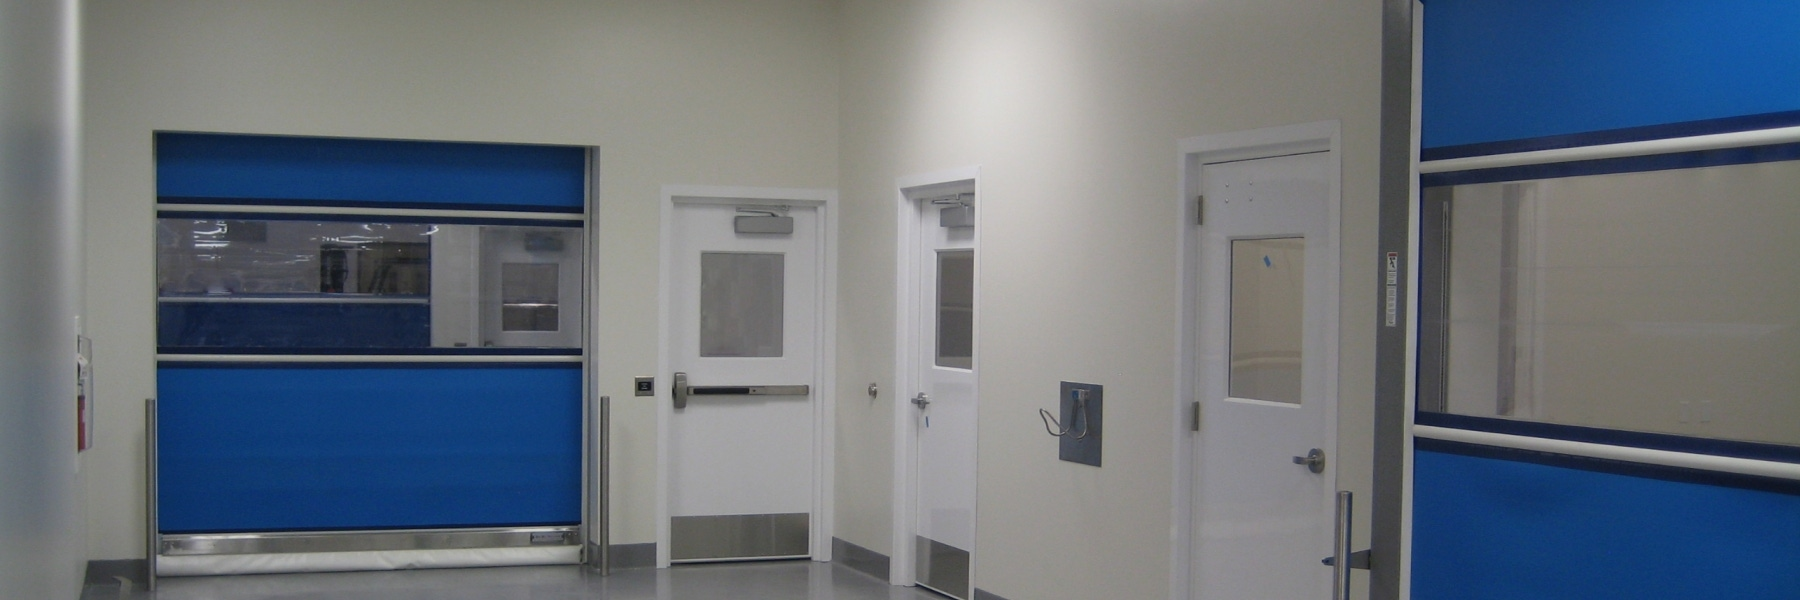 Pharmaceutical doors